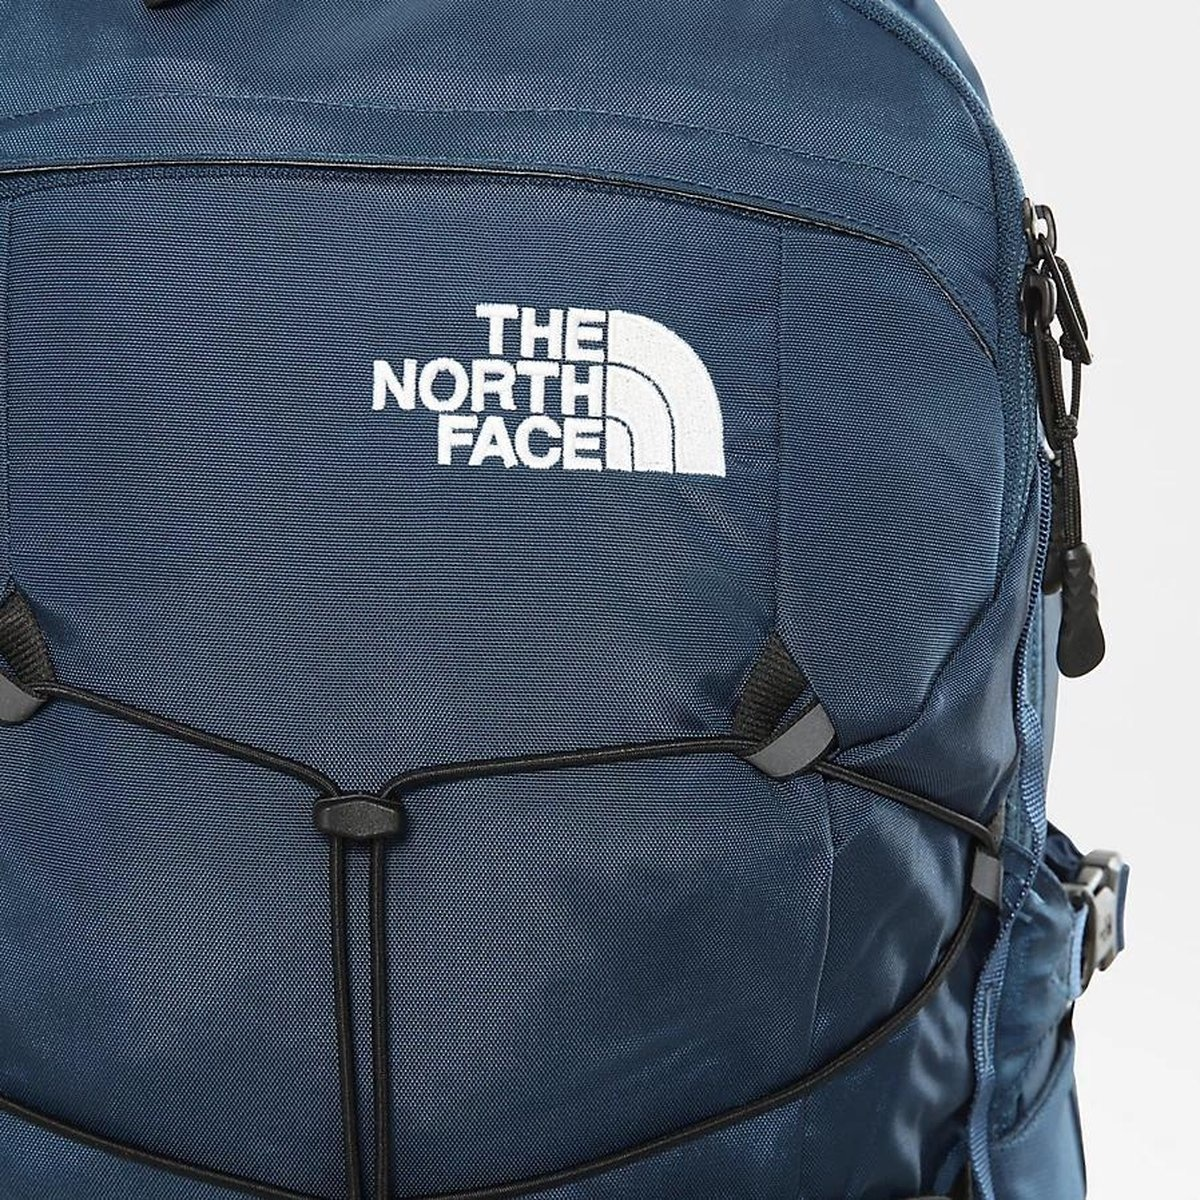 The North Face The North Face Borealis 16 inch laptoprugzak - Blue Wing Teal / TNF Black - nieuwe versie